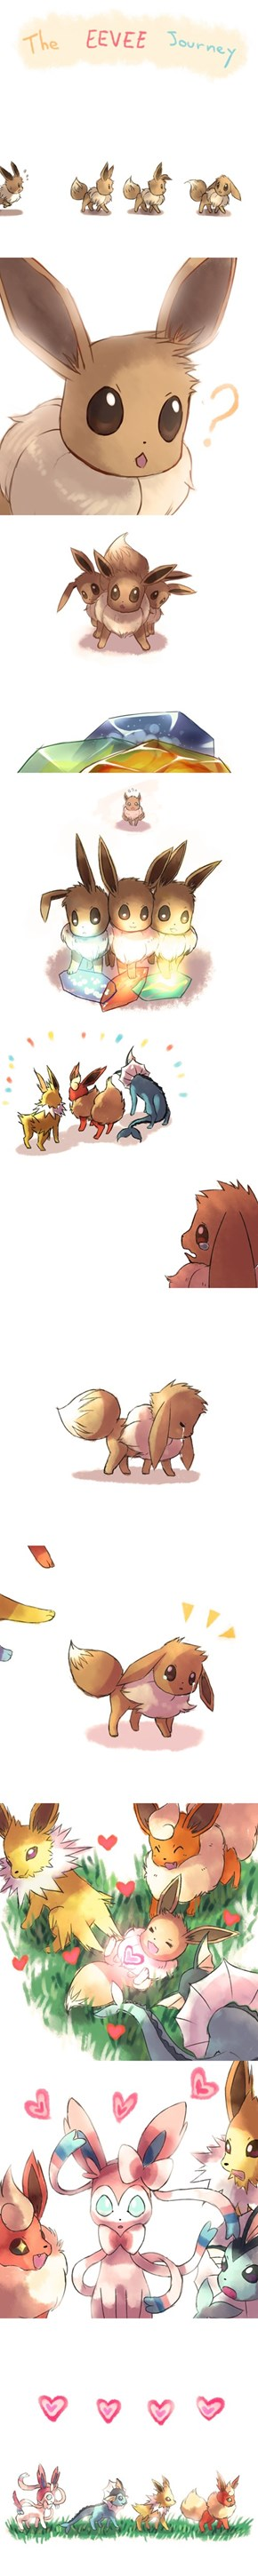 A Tale of Four Eevees